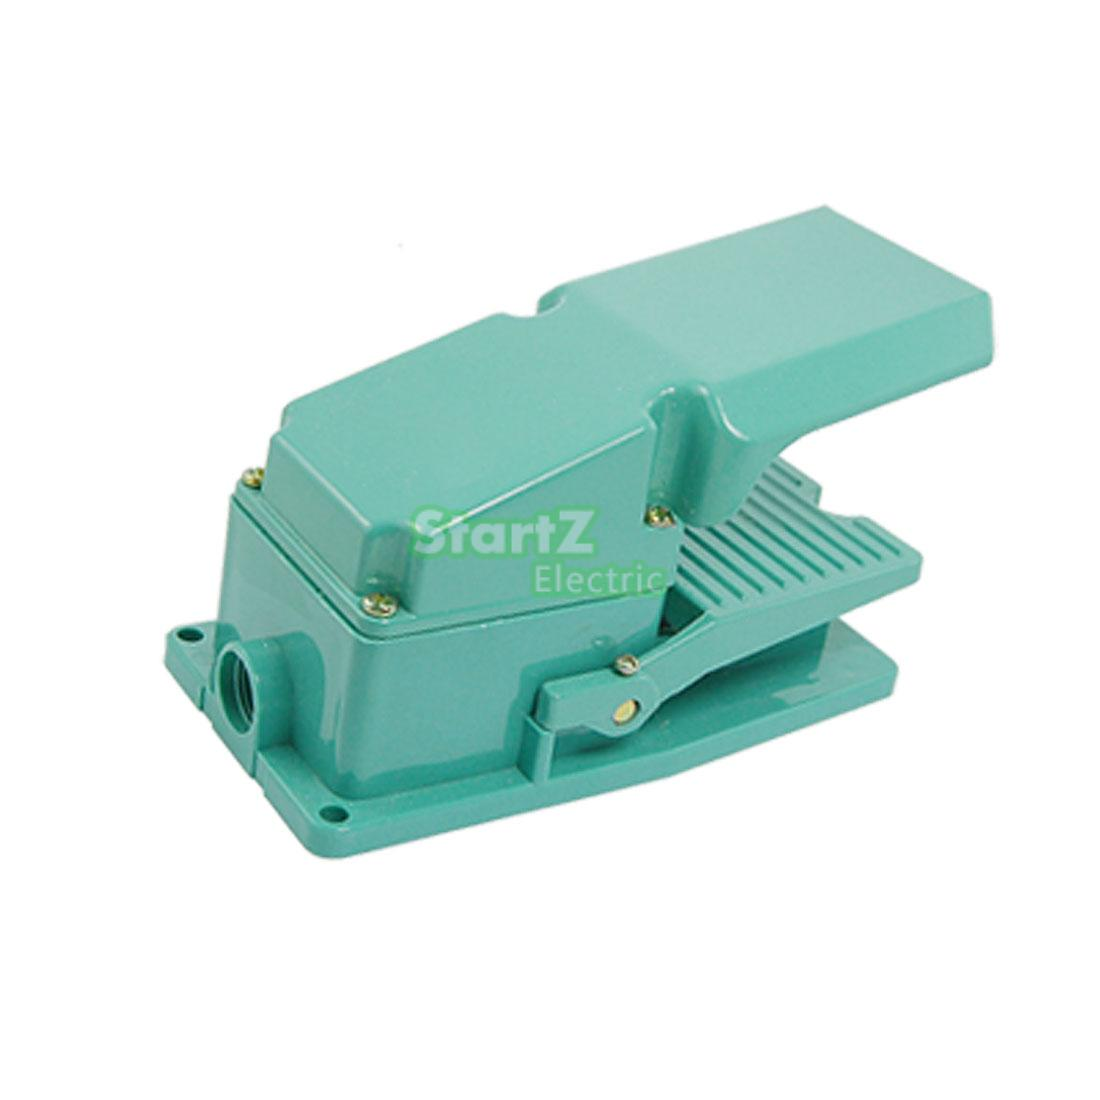 AC 250V 15A Antislip Metal Momentary Industrial Treadle Foot Pedal Switch TFS-302 ac 250v 15a low force hinge lever momentary micro switch microswitch